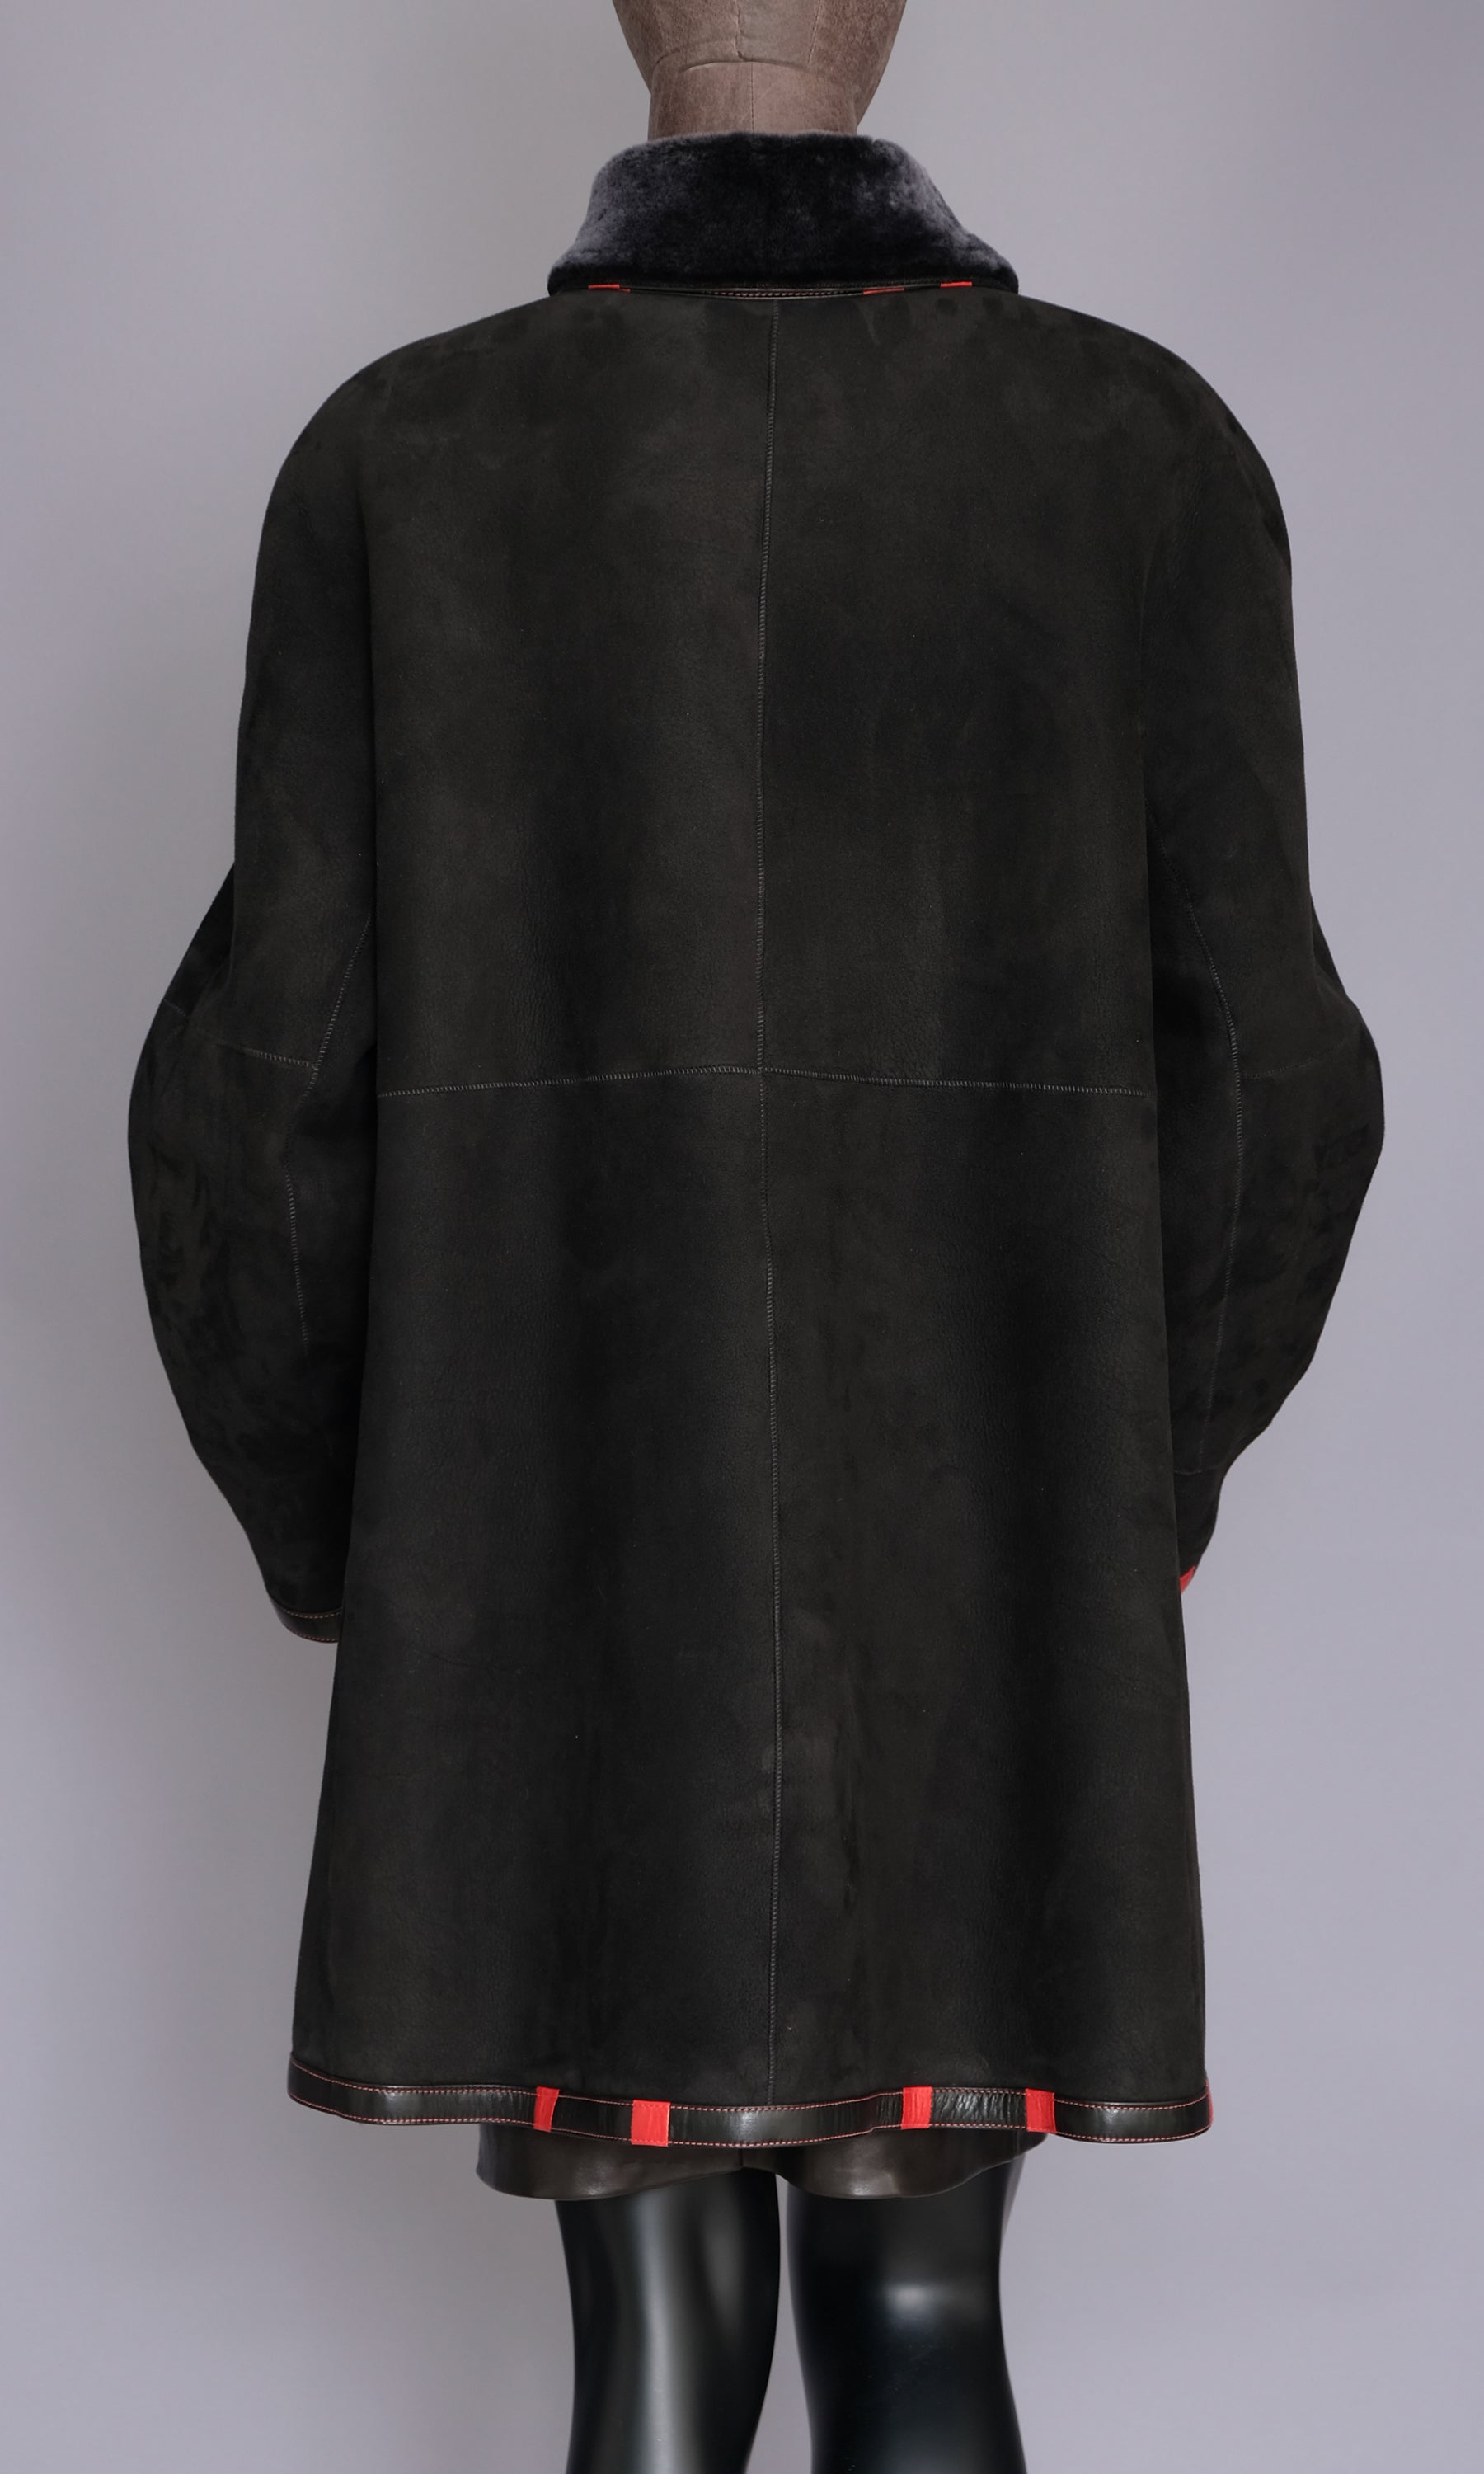 Black Shearling Swing Coat with Red trim size xxl